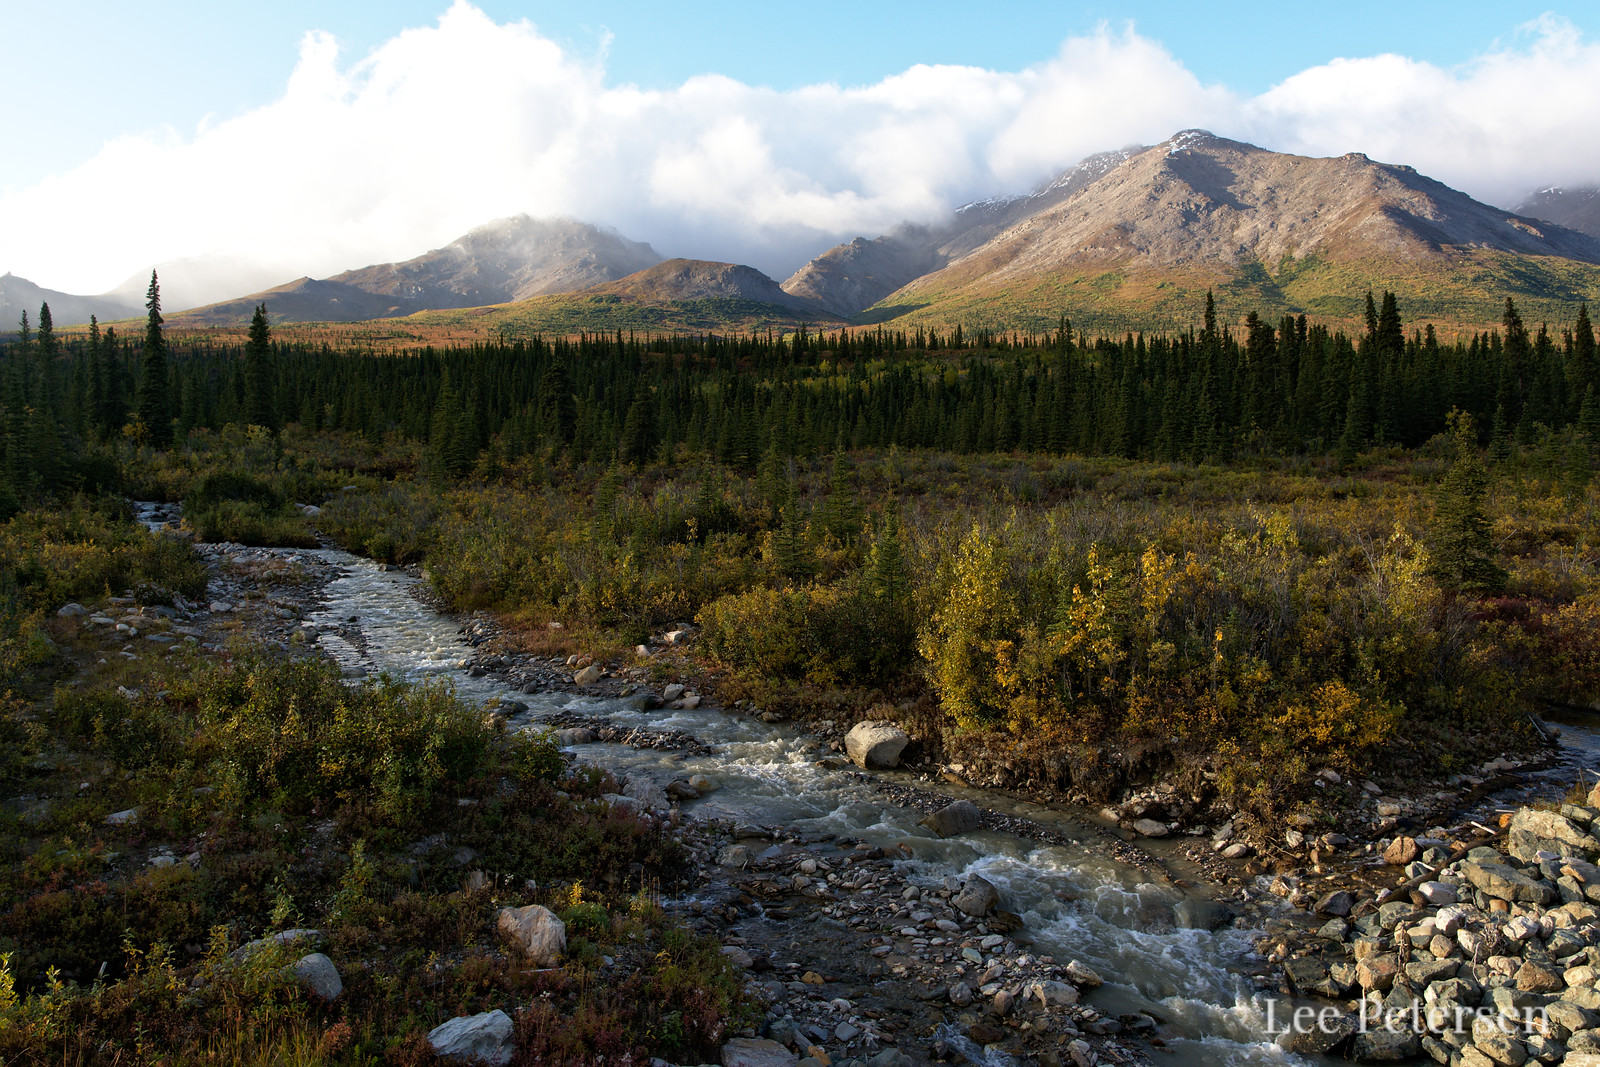 Mountain stream near the park entrance in Denali National Park